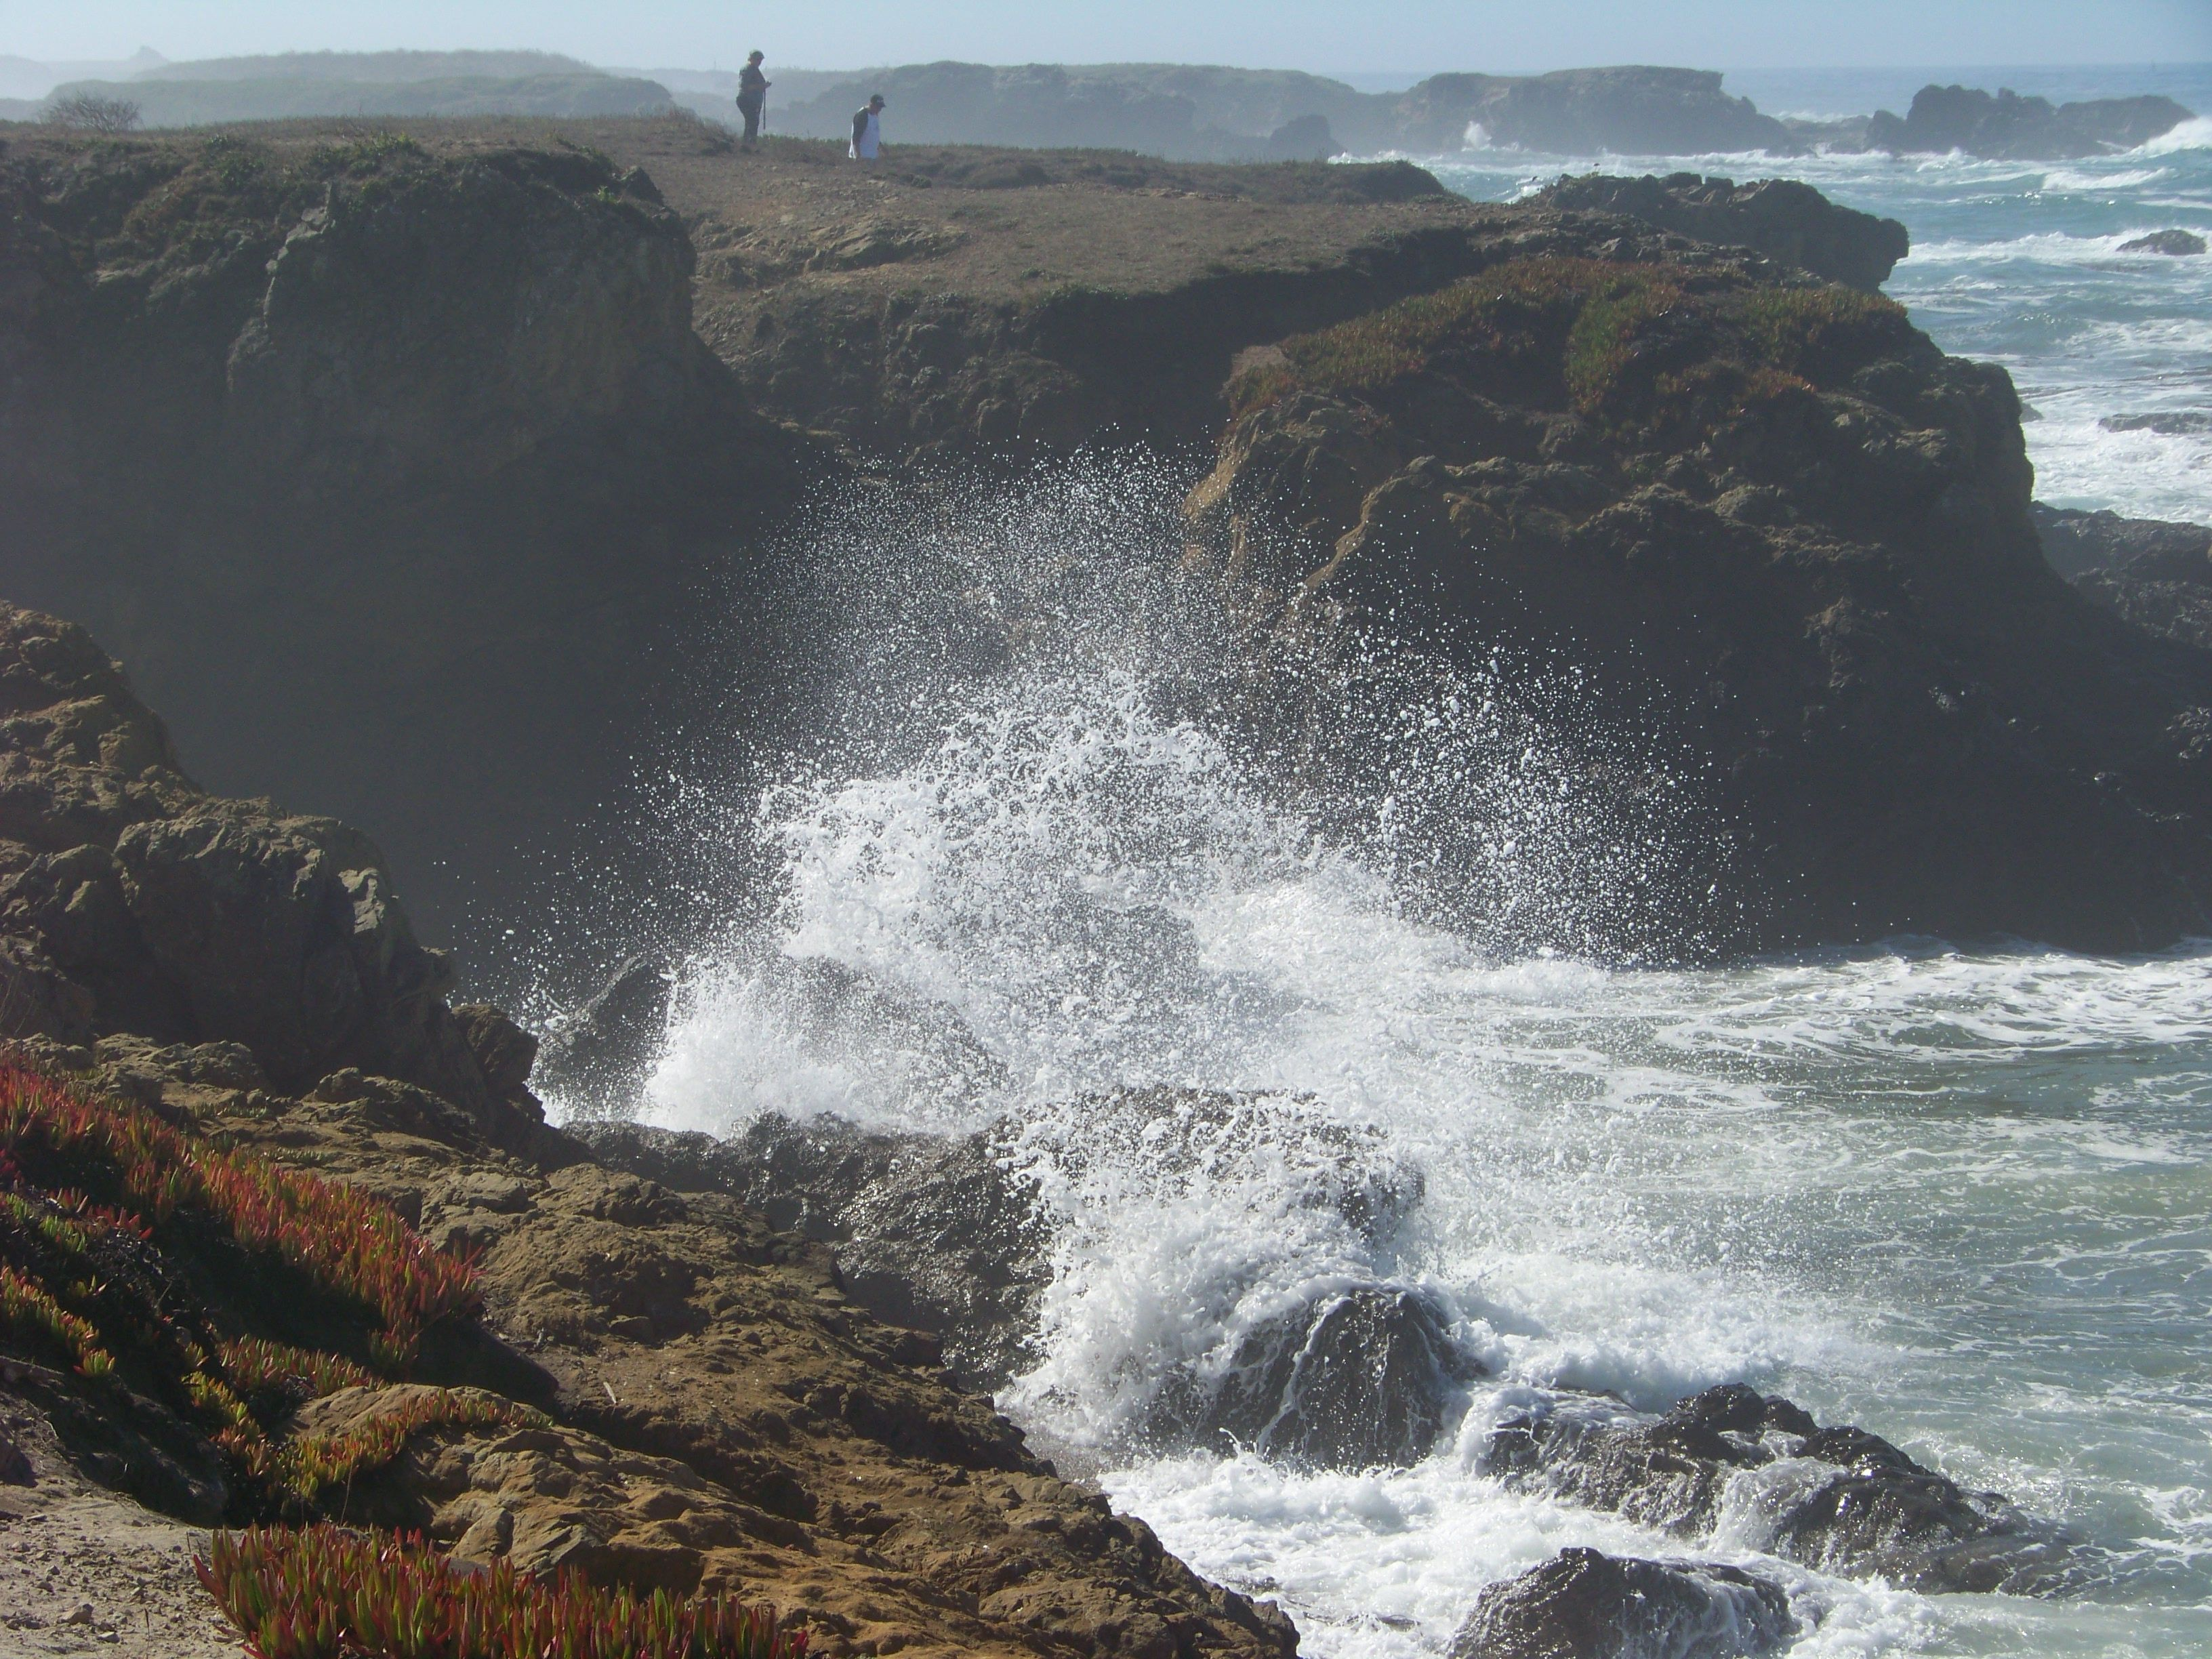 Here is a photo taken on a visit to Ft. Bragg, California, my favorite ocean getaway in the north state. This was taken in the spring of 2011. The ocean was particularly fierce that day! I love it! :)